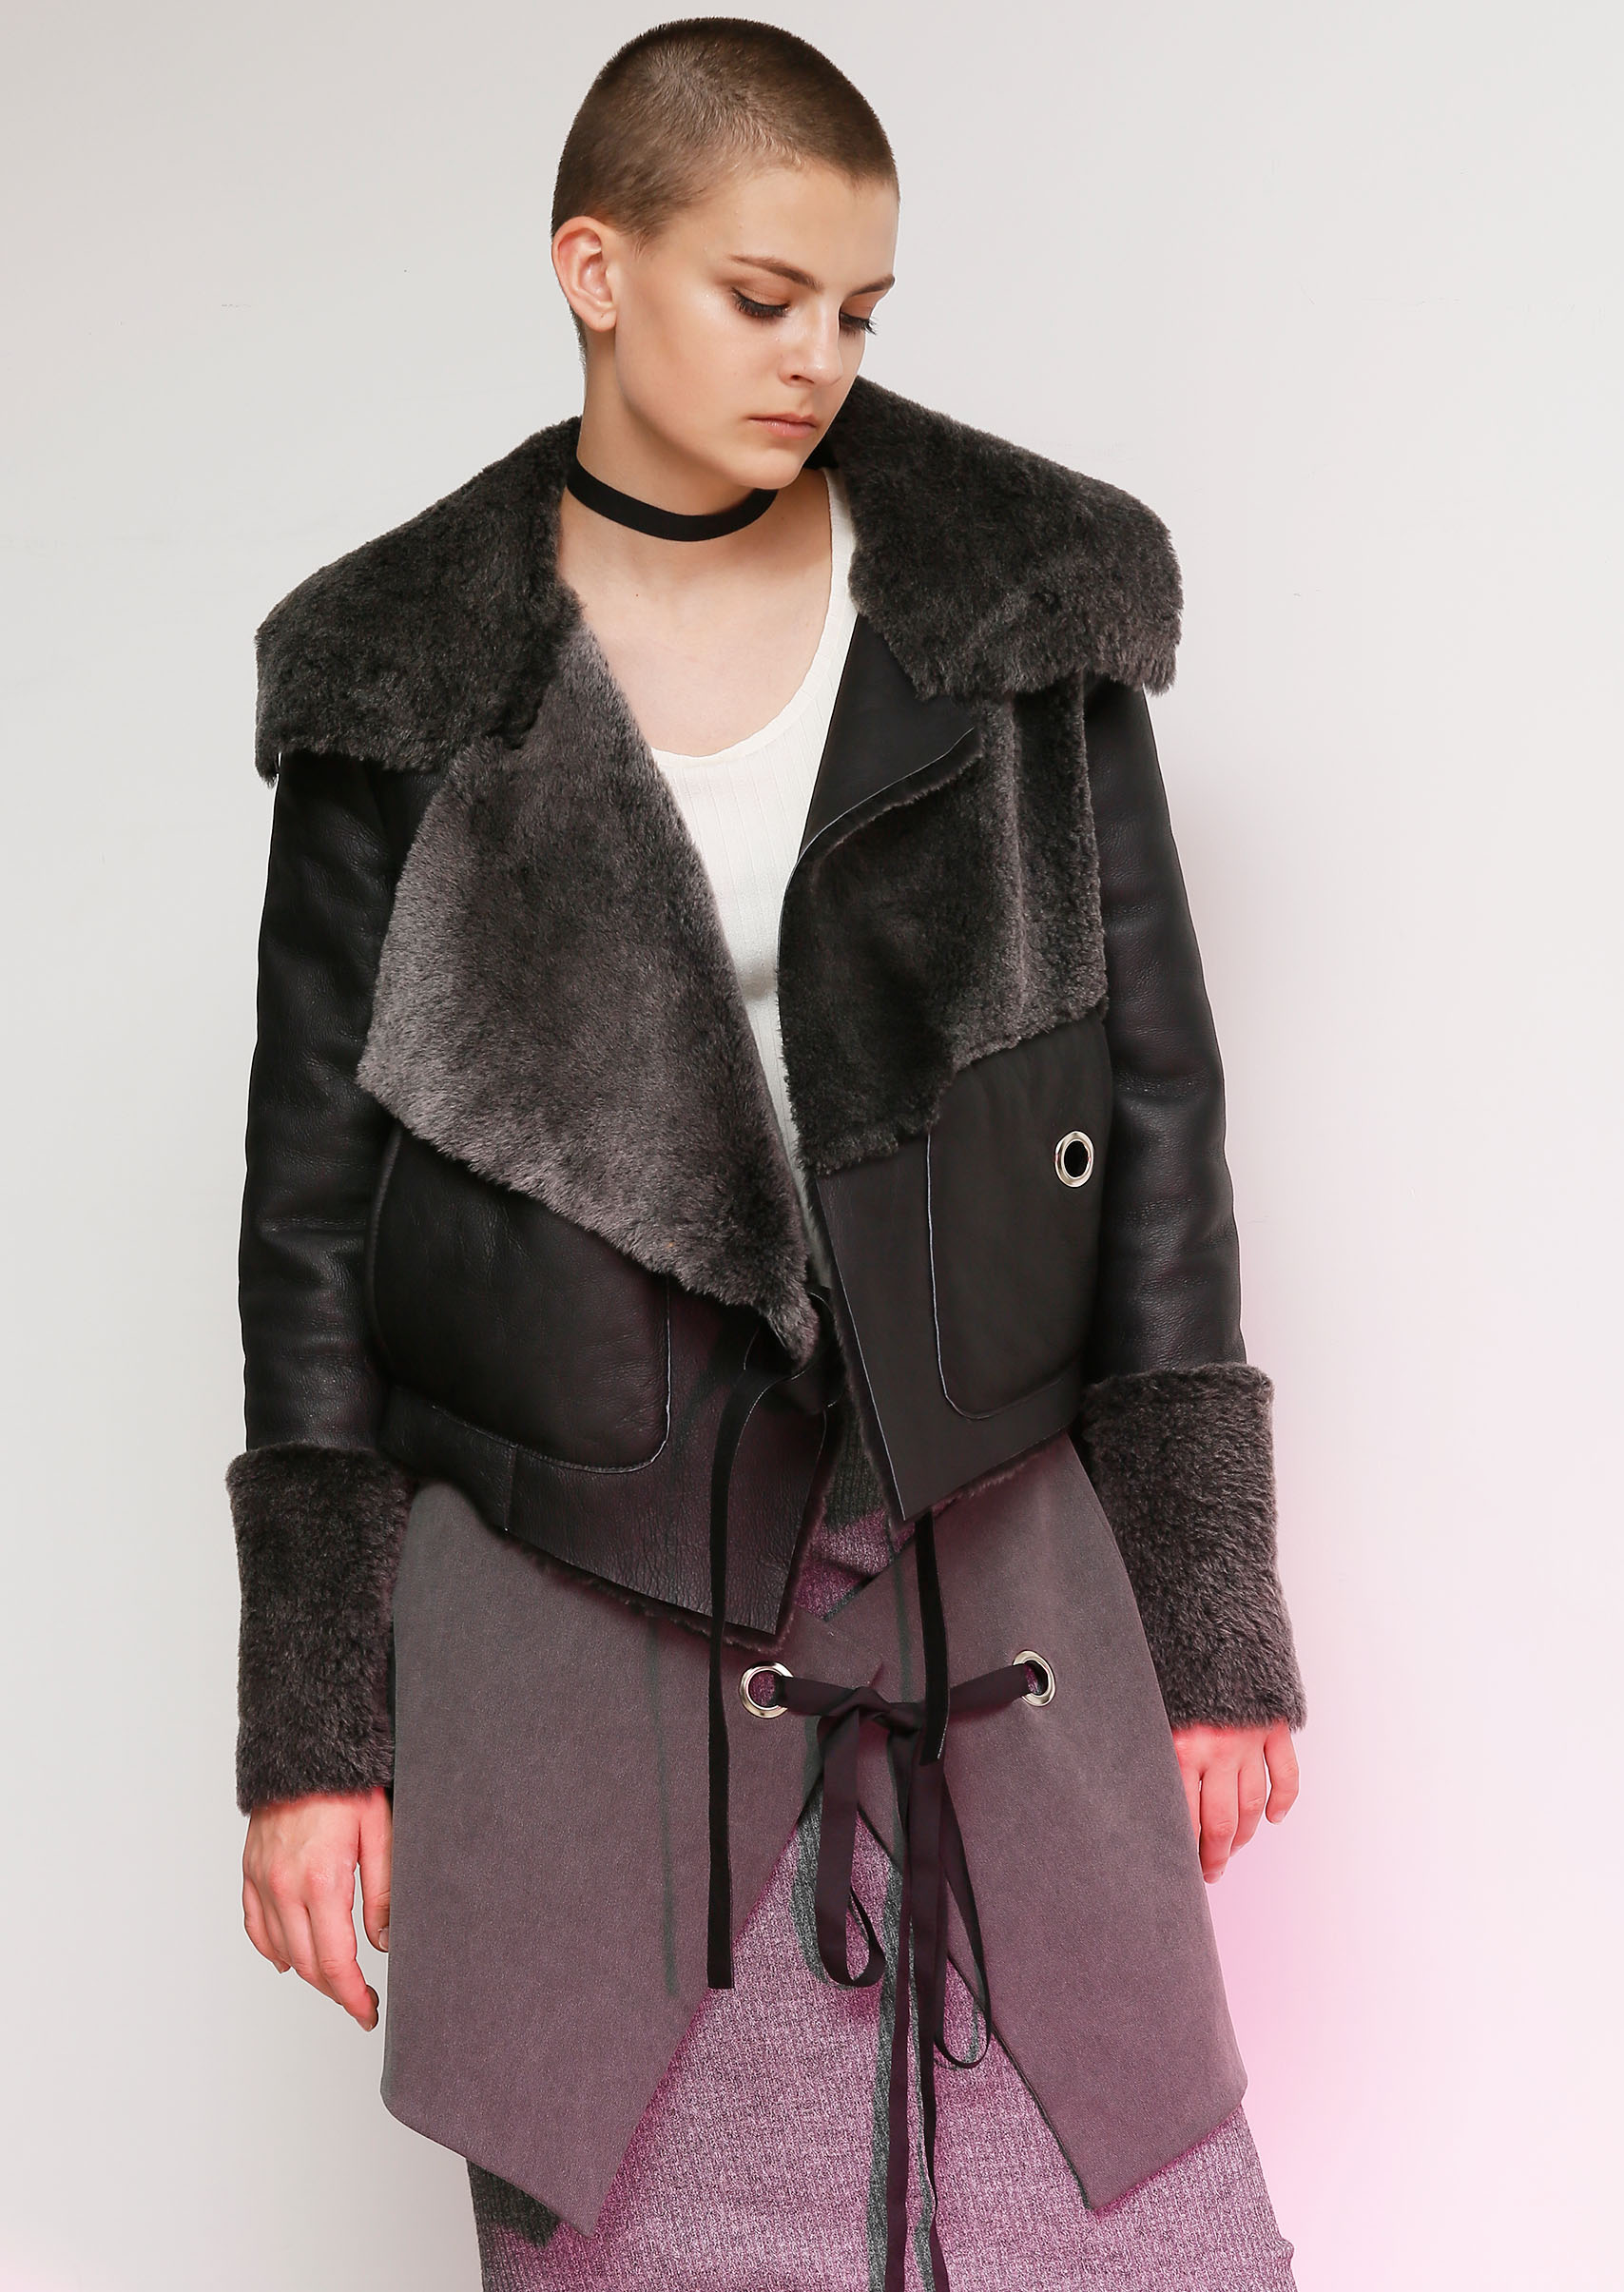 FUR JACKET_ NOHKE 16FW COLLECTION